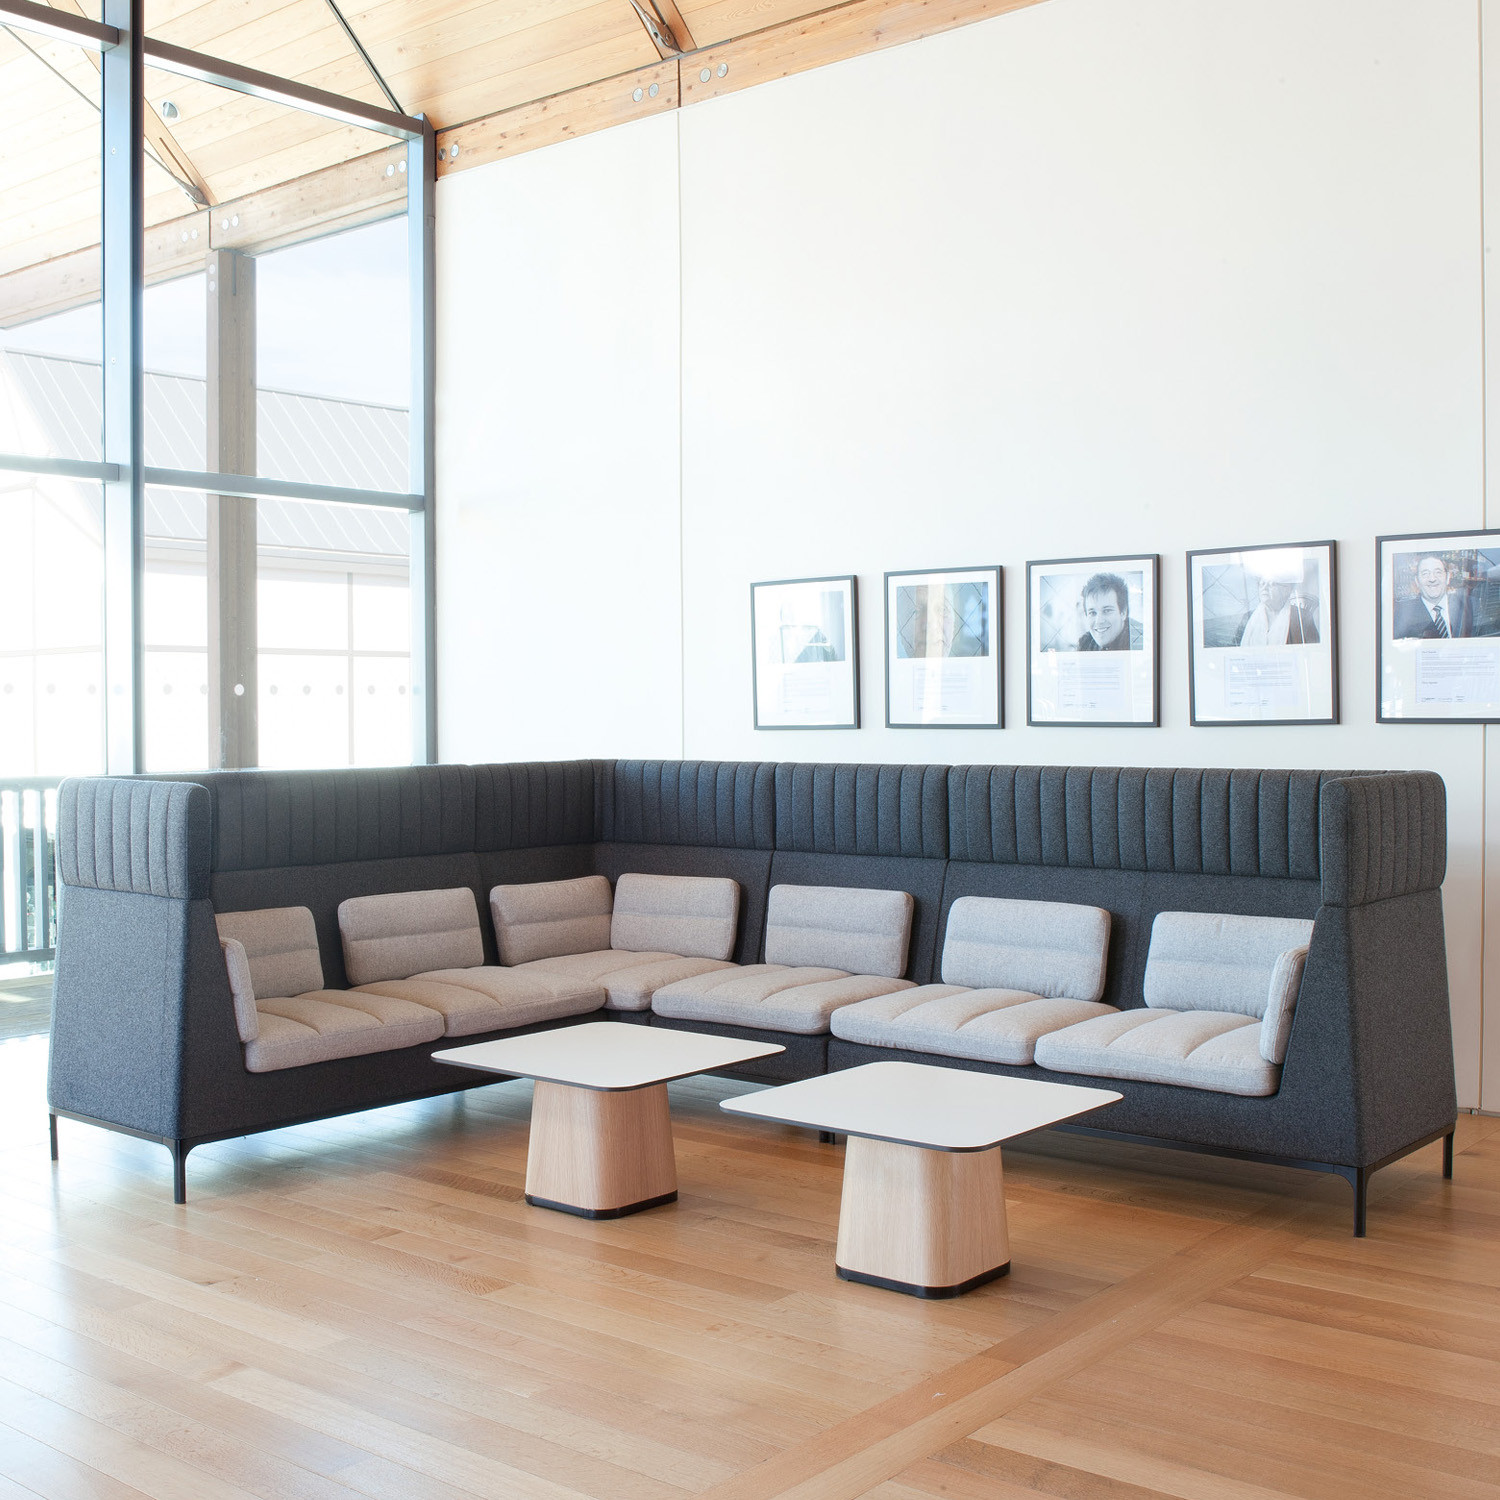 Haven High Back Sofa | Haven Acoustic Soft Seating | Apres Furniture